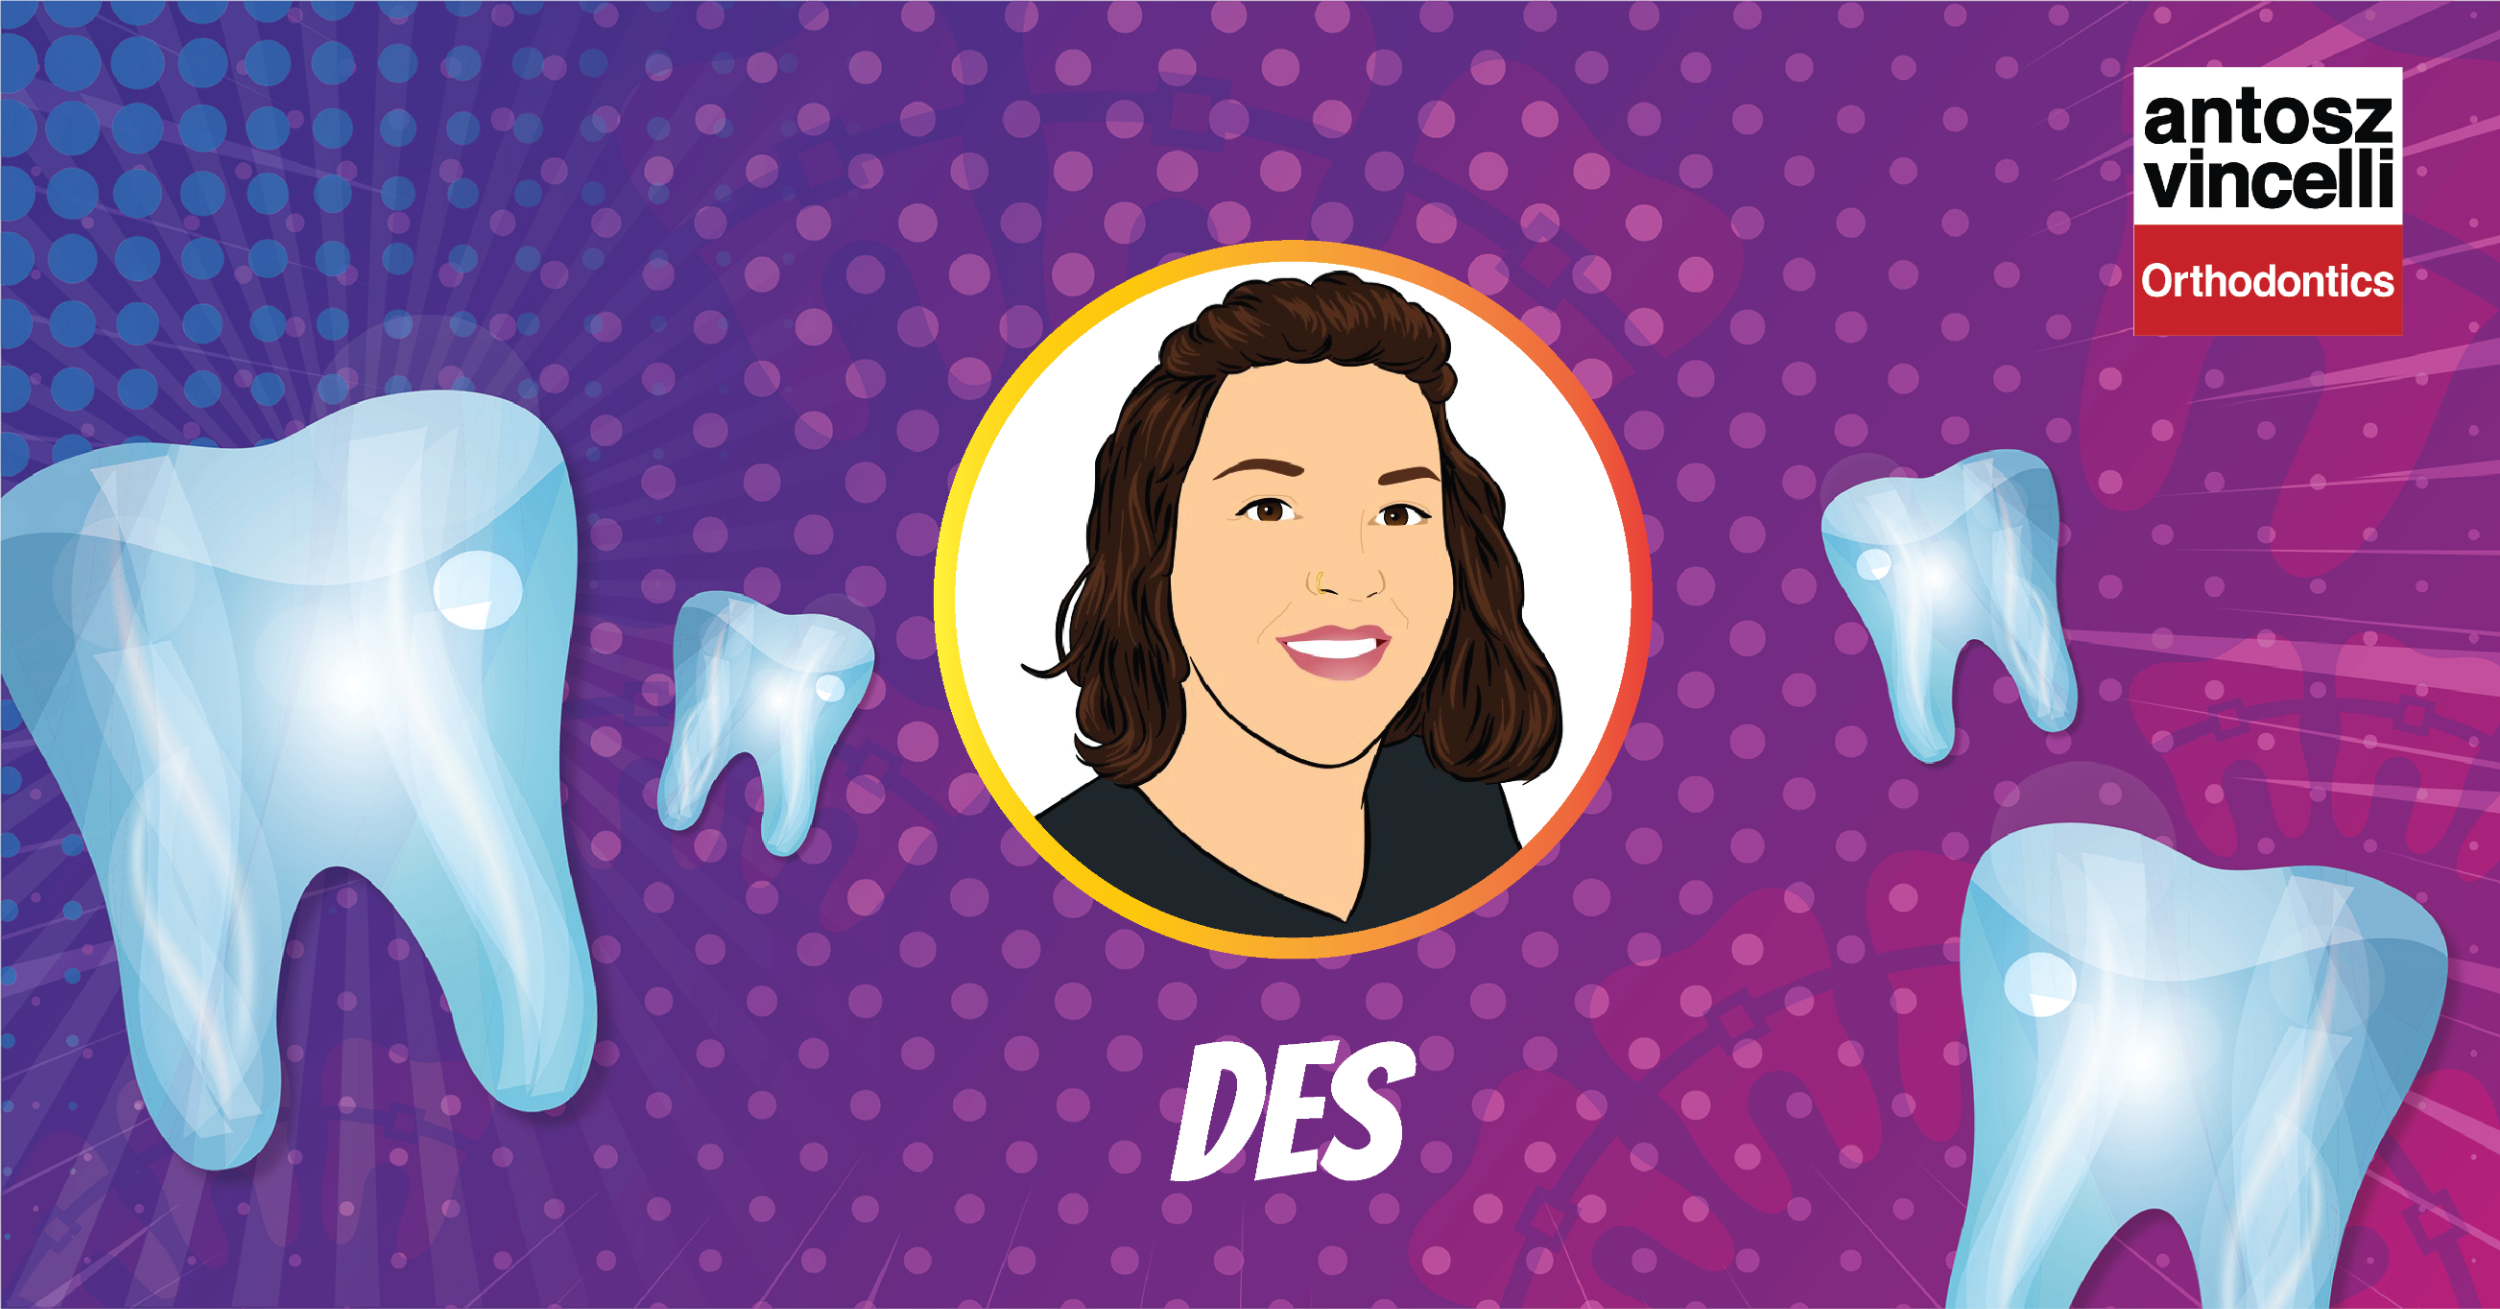 Celebrating: Desiree, Orthodontic Dental Assistant